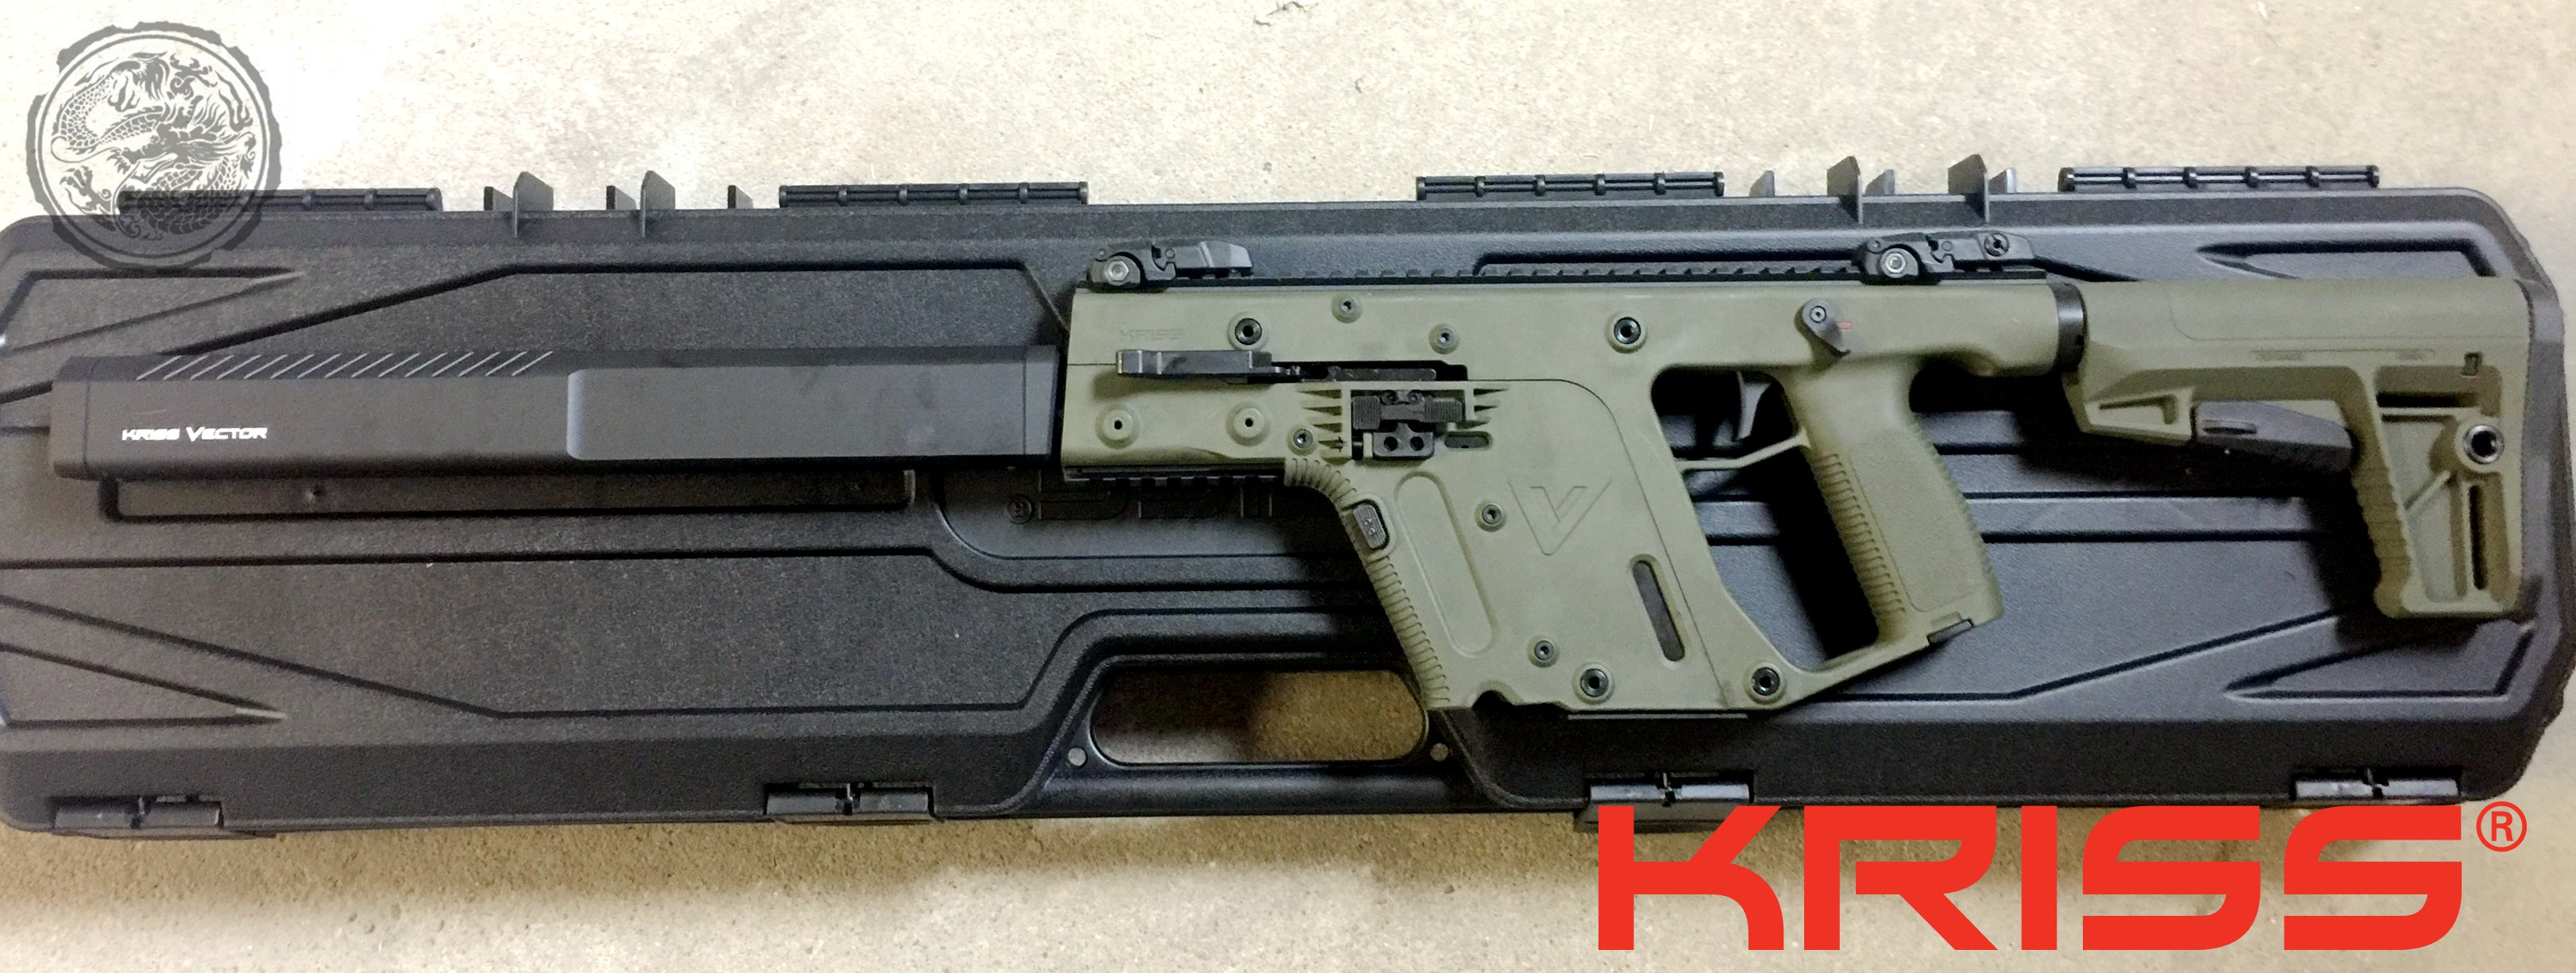 3244x1225 Kriss Vector Gen Ii Crb Enhanced Semi Auto Rifle 18.6 Barrel Od